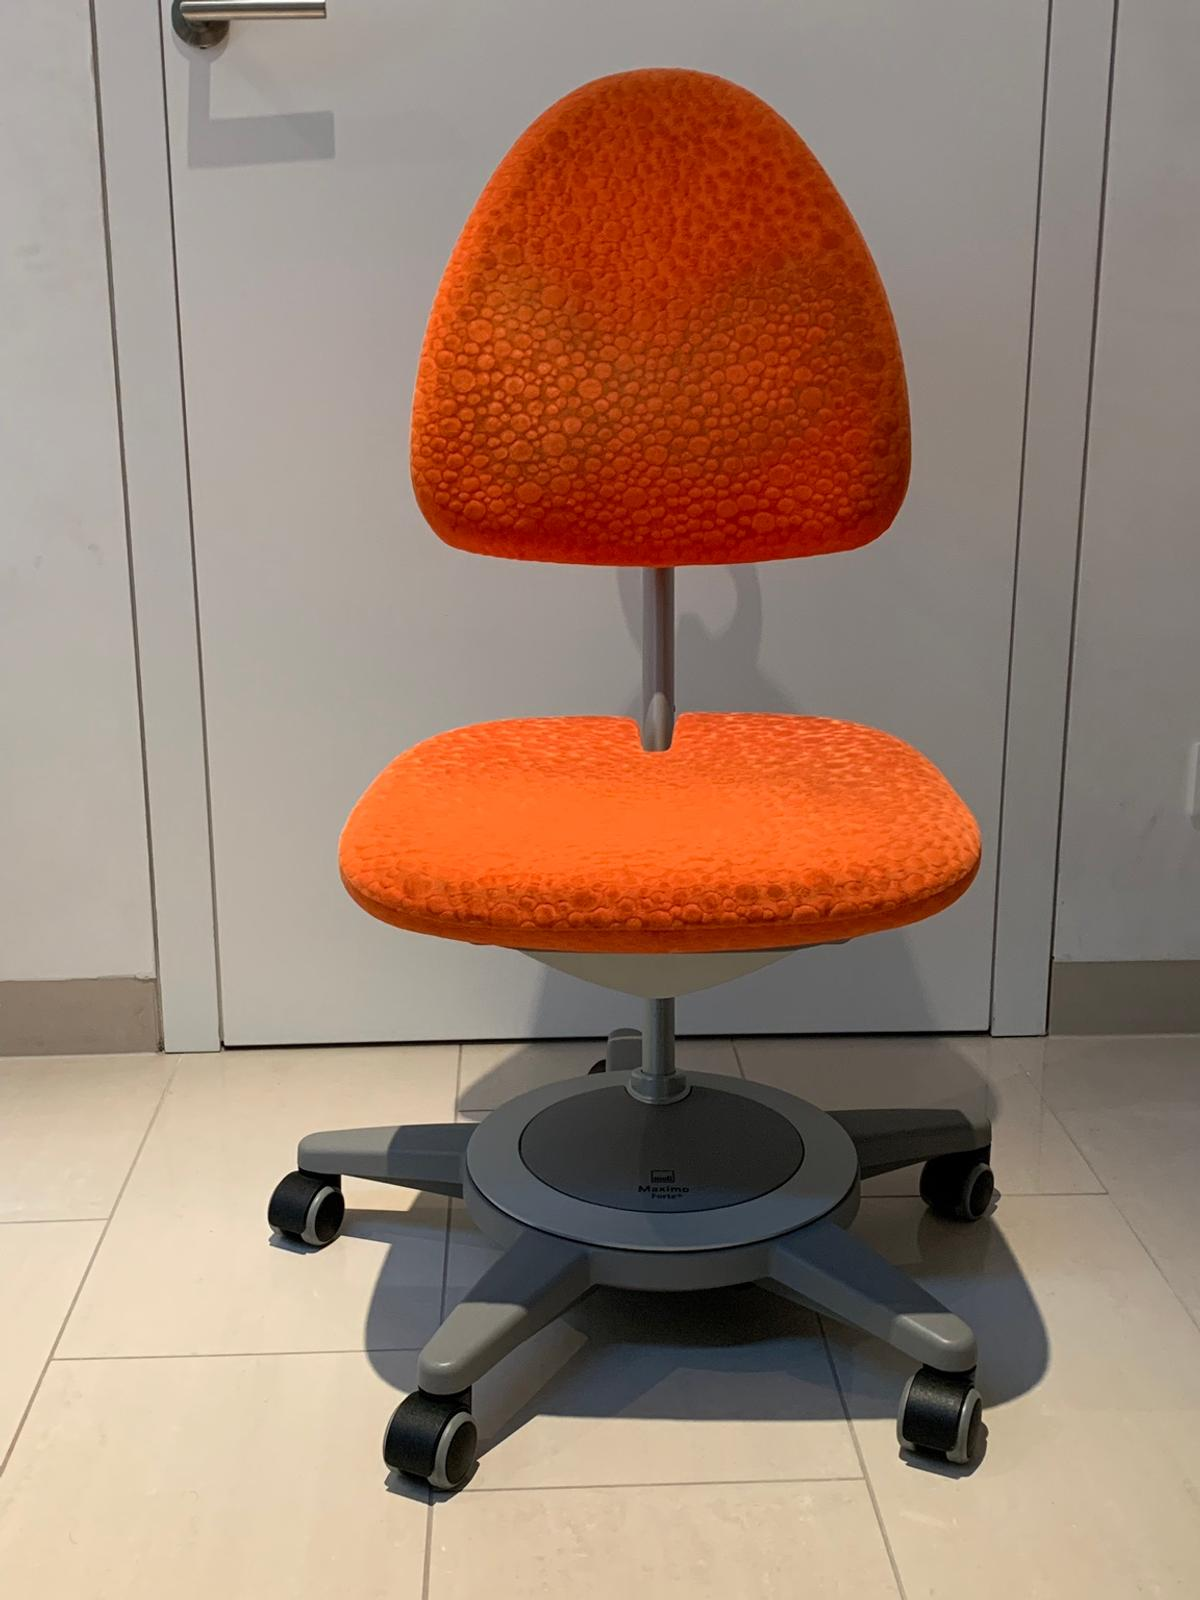 Moll Sessel Moll Maximo Orange Classic Stuhl Sessel